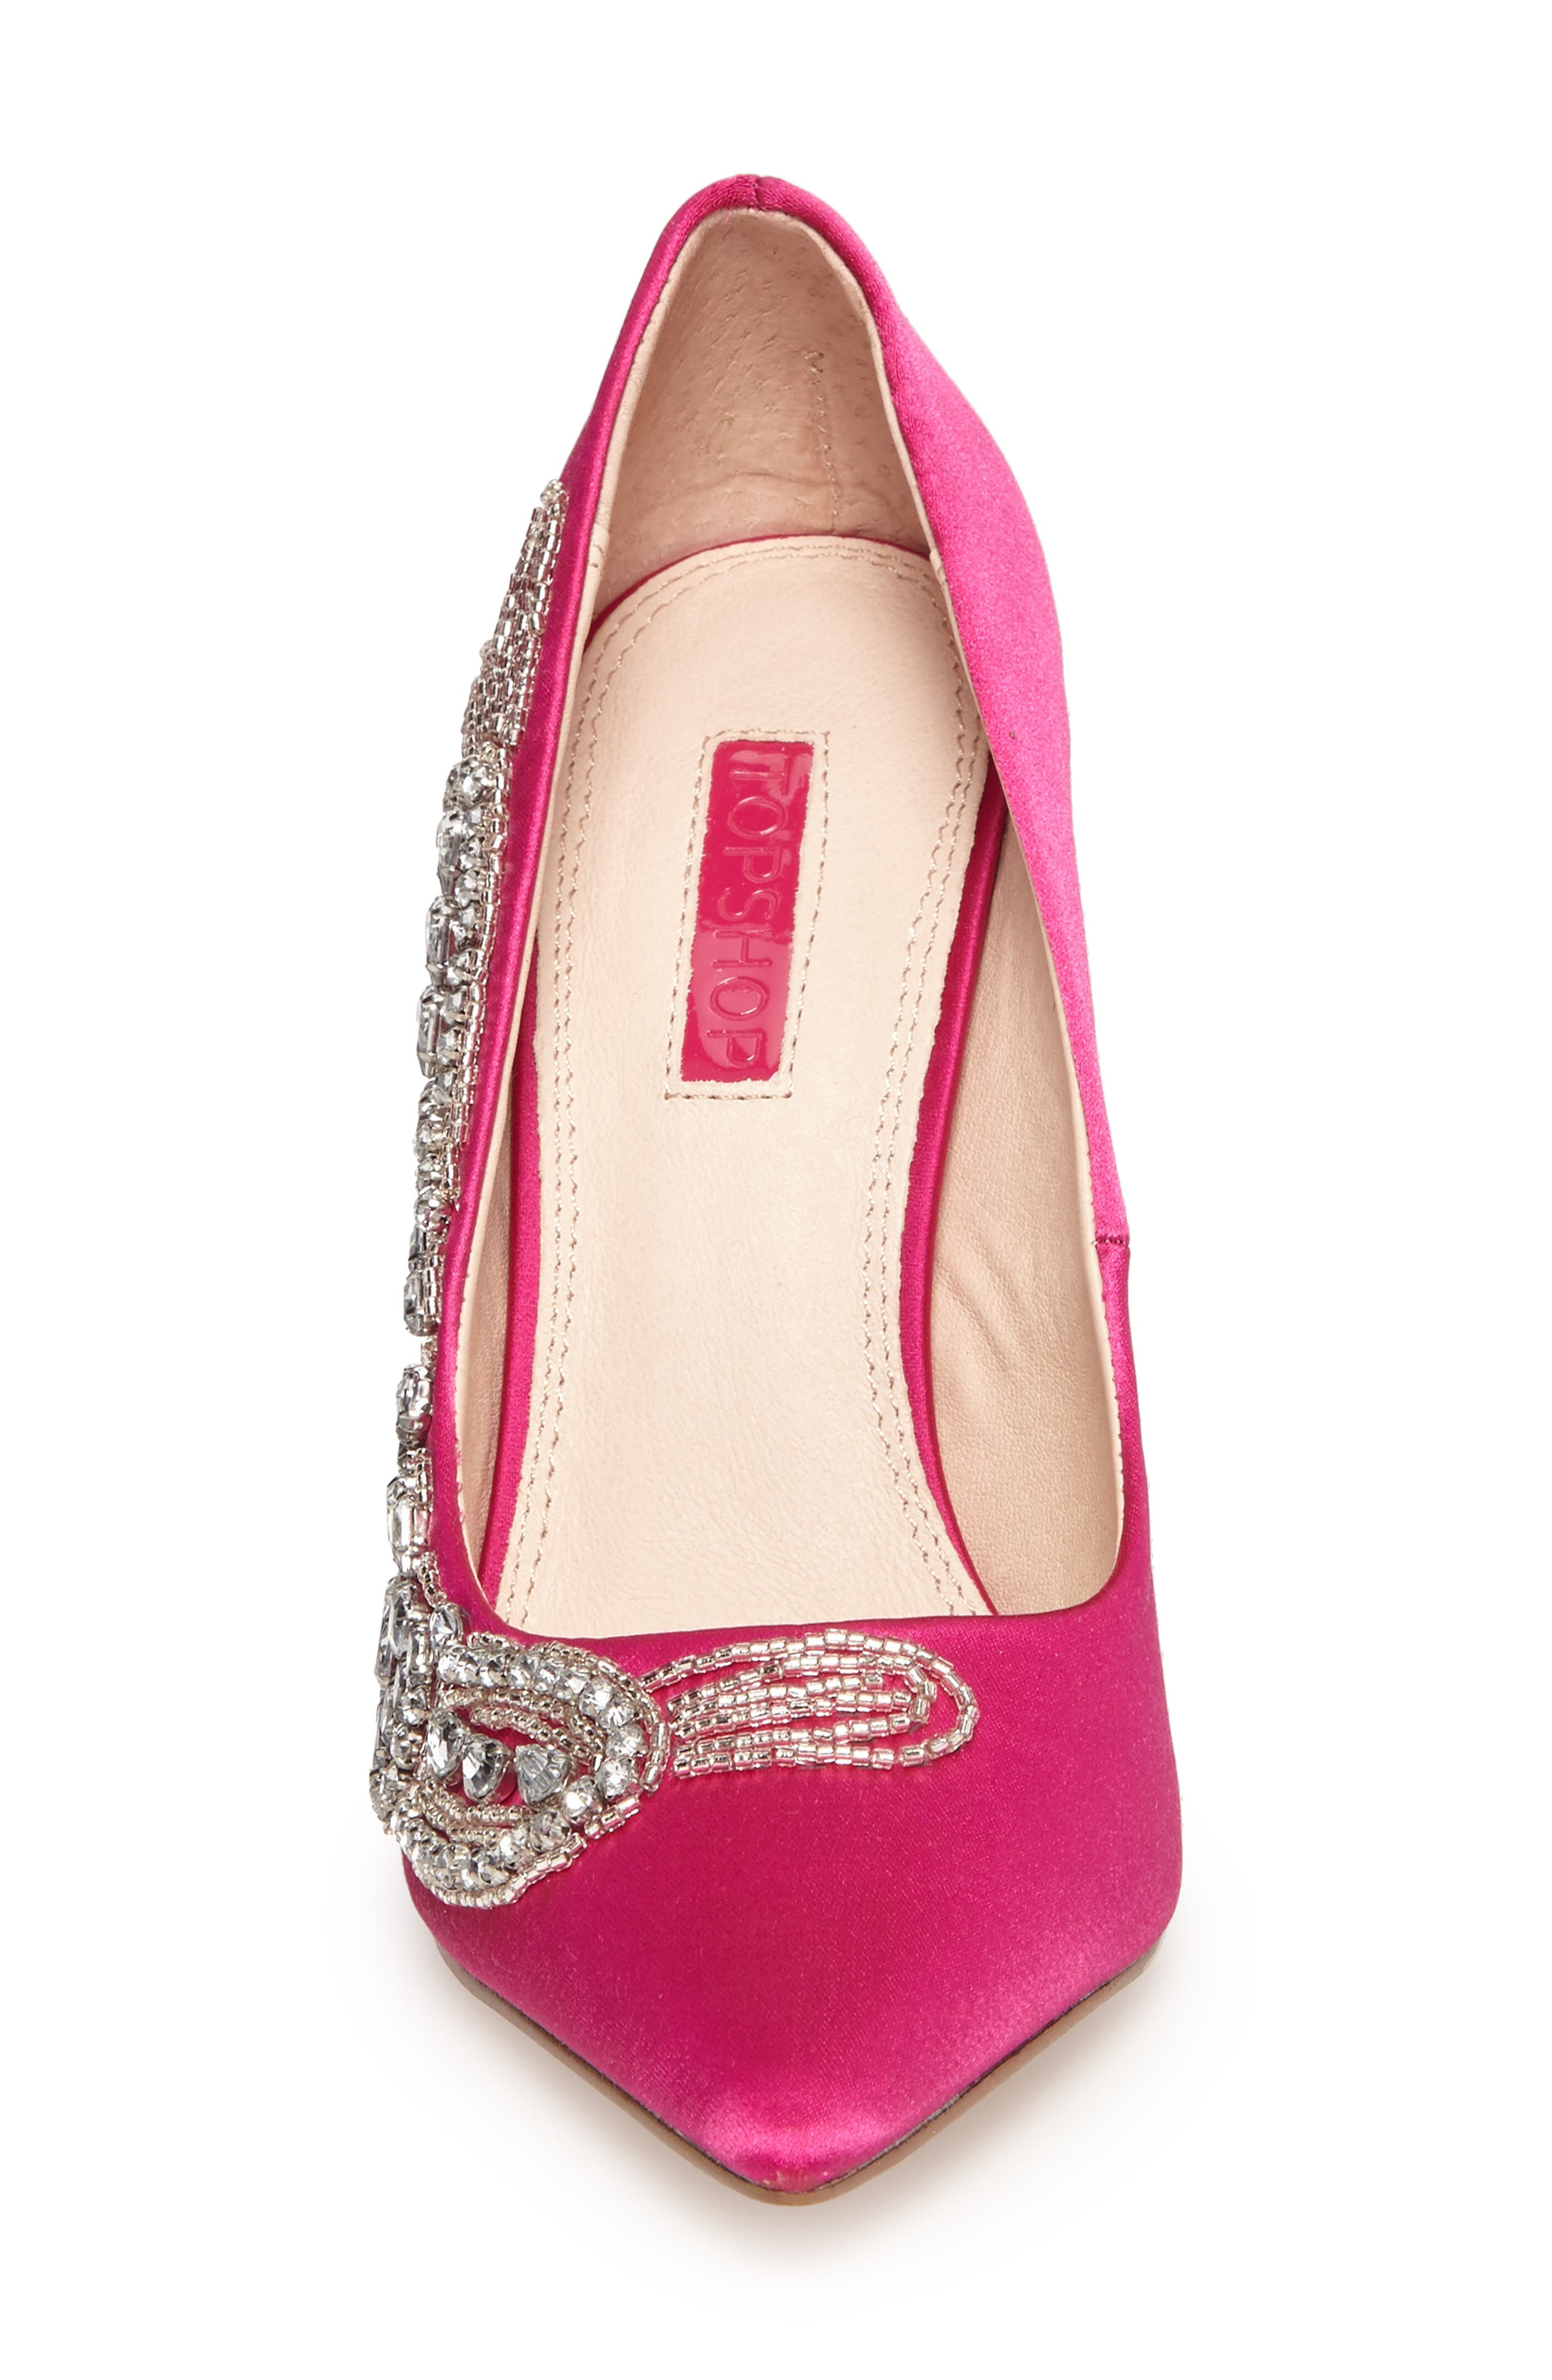 April Embellished Pump,                             Alternate thumbnail 4, color,                             Pink Multi